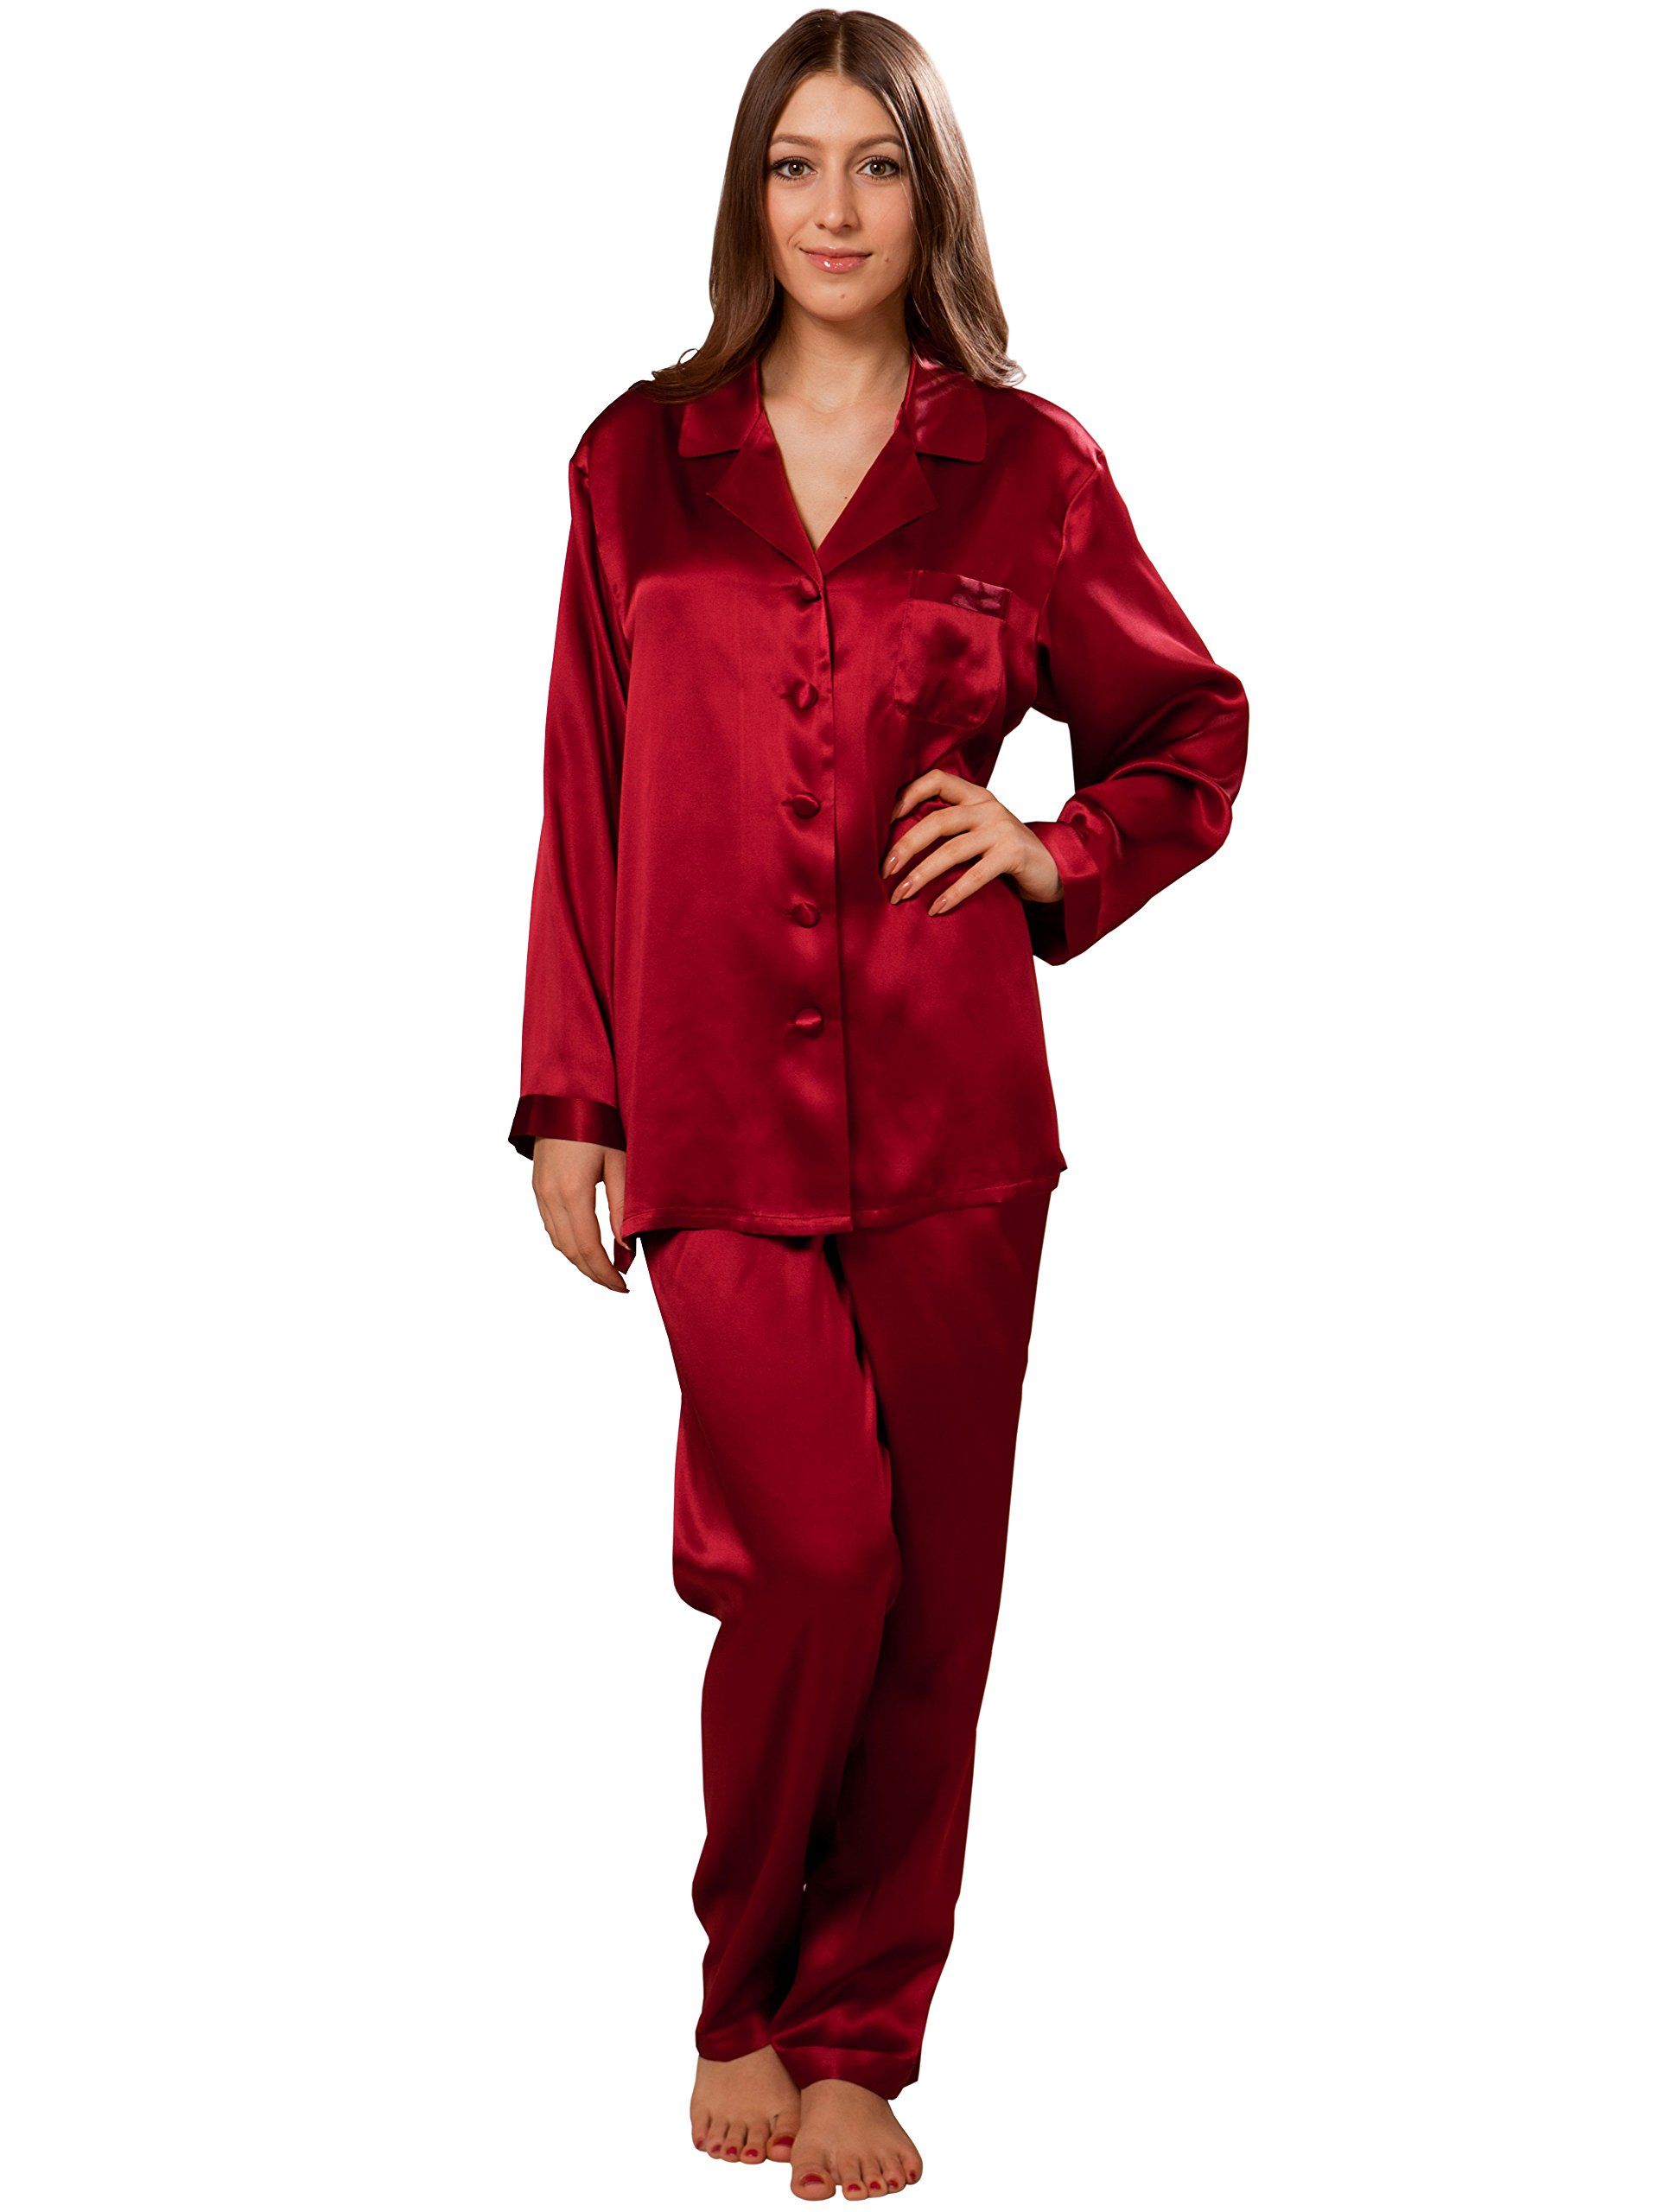 ElleSilk Silk Pajamas For Women, Long Sleeve Silk Sleepwear, Premium Quality Mulberry Silk, Wine, L by ElleSilk